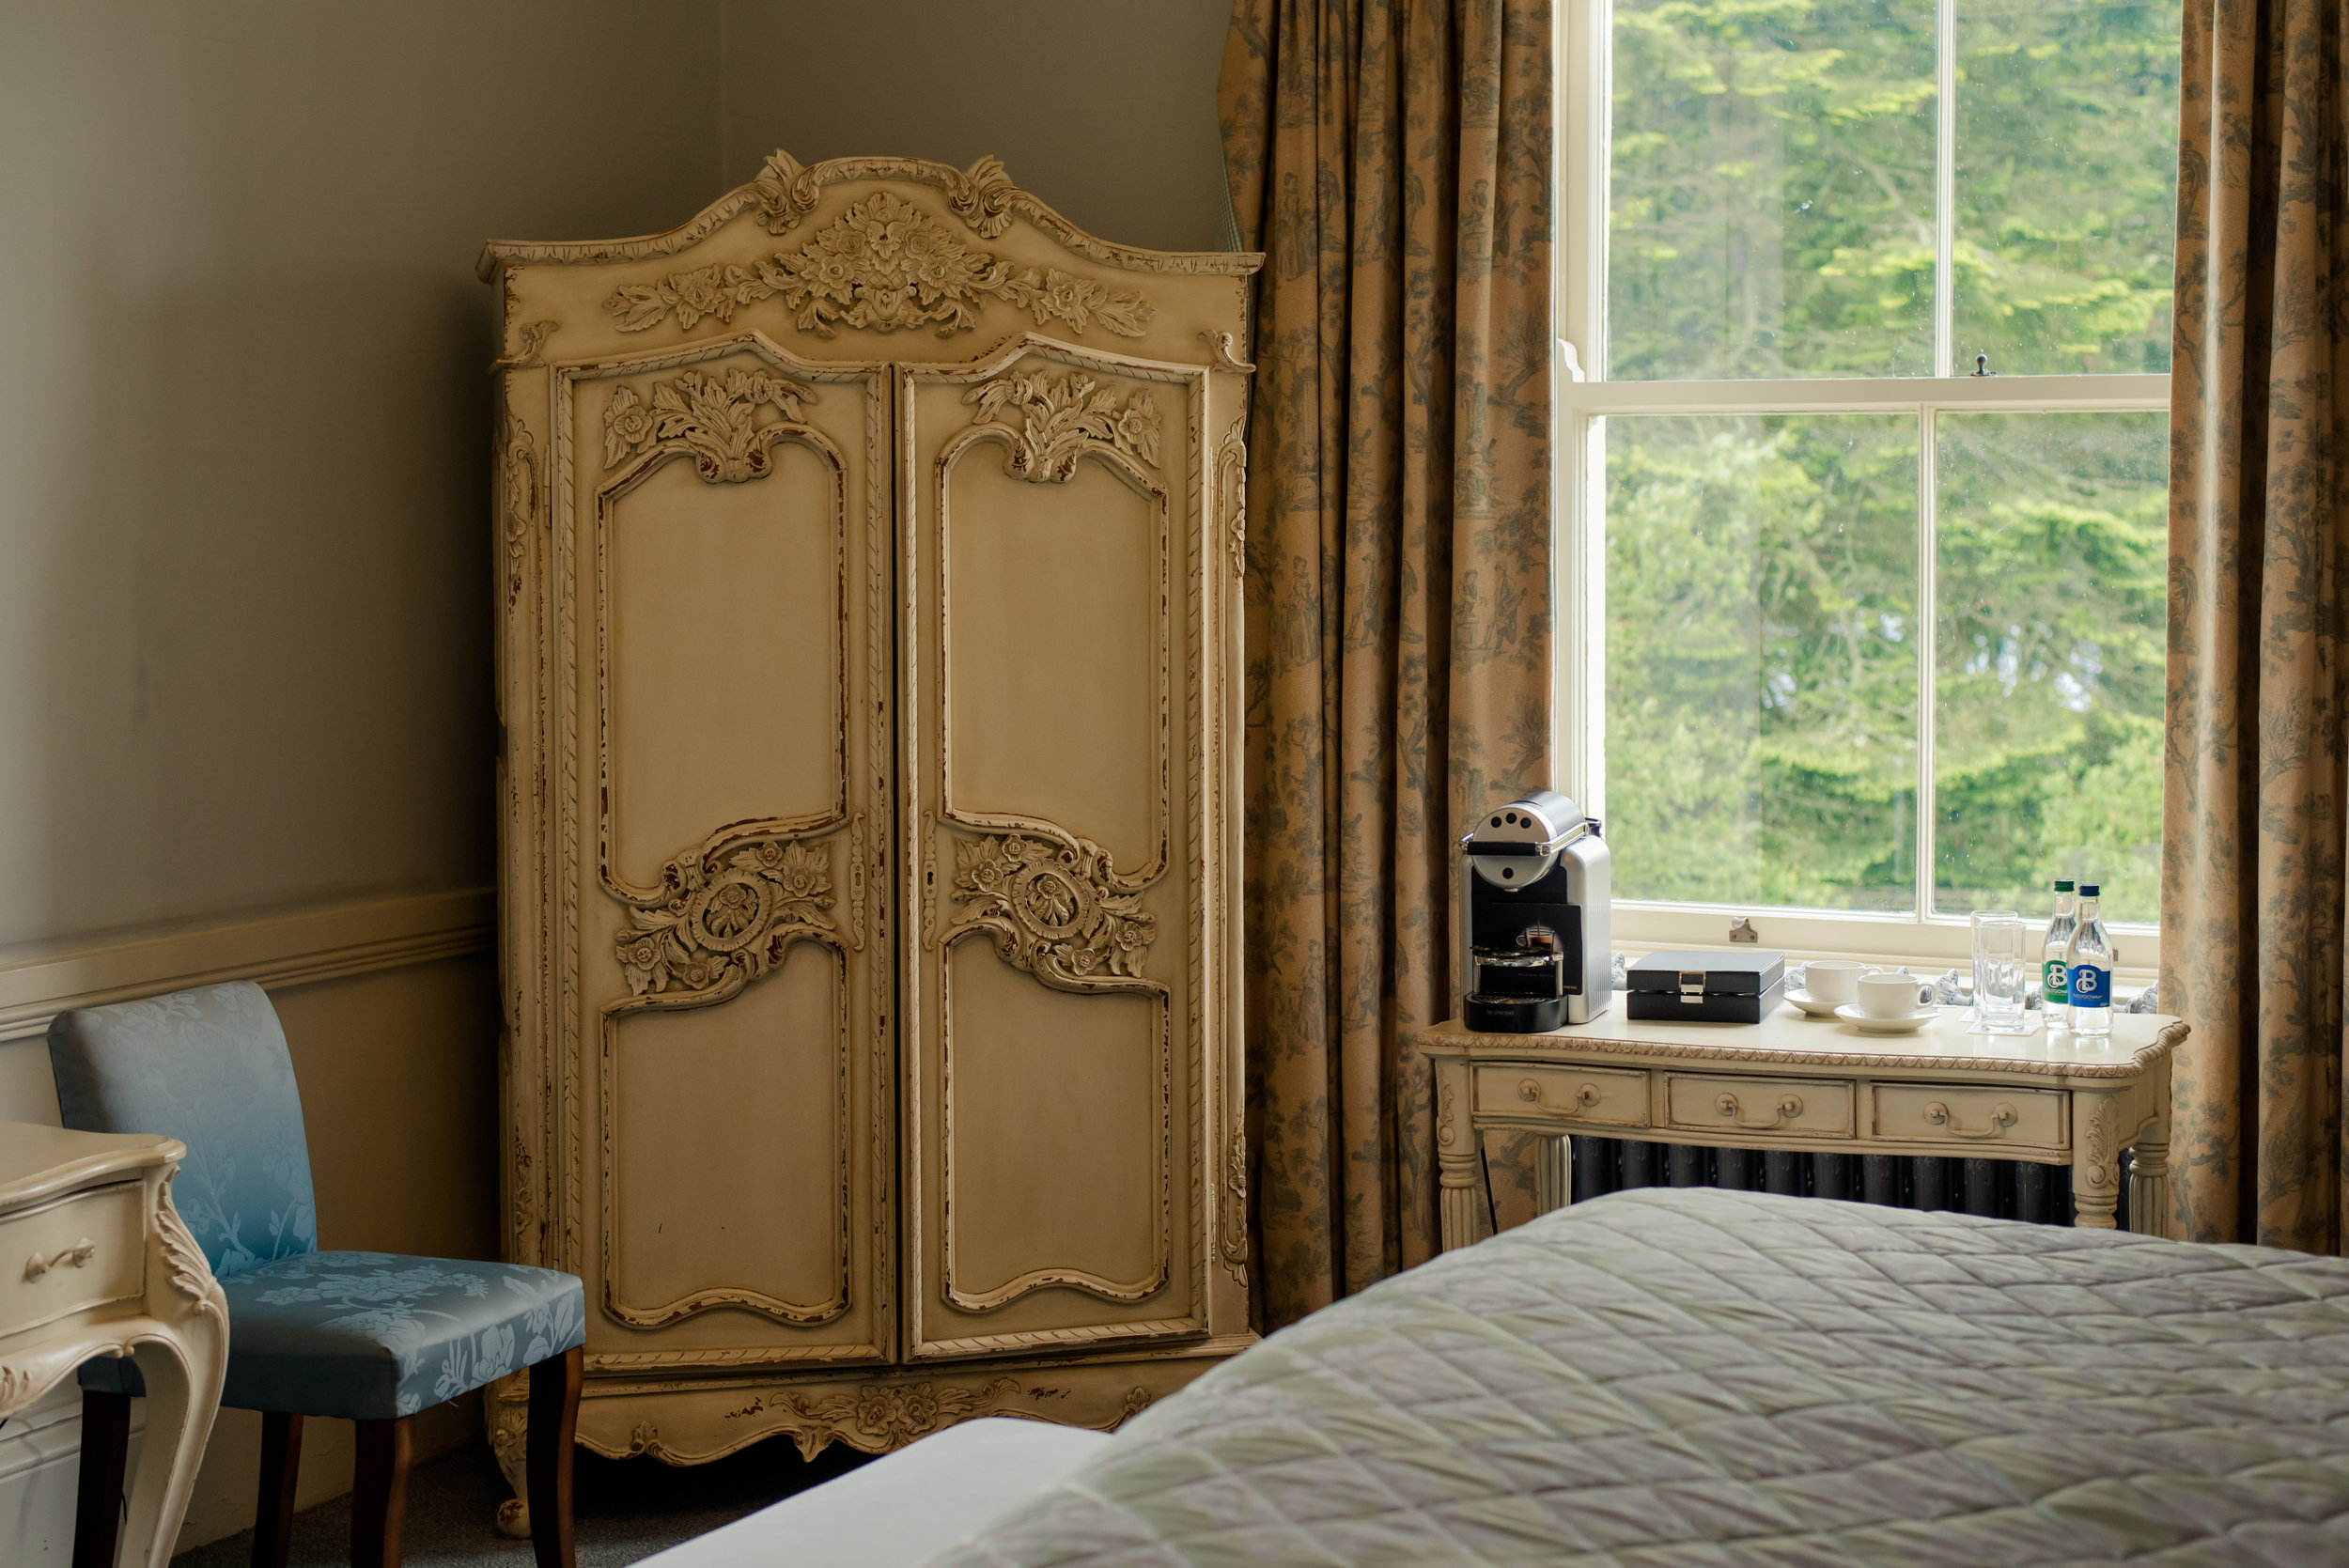 Tulfarris Hotel & Golf Resort Manor House bedroom with cupboard and coffee machine.jpg